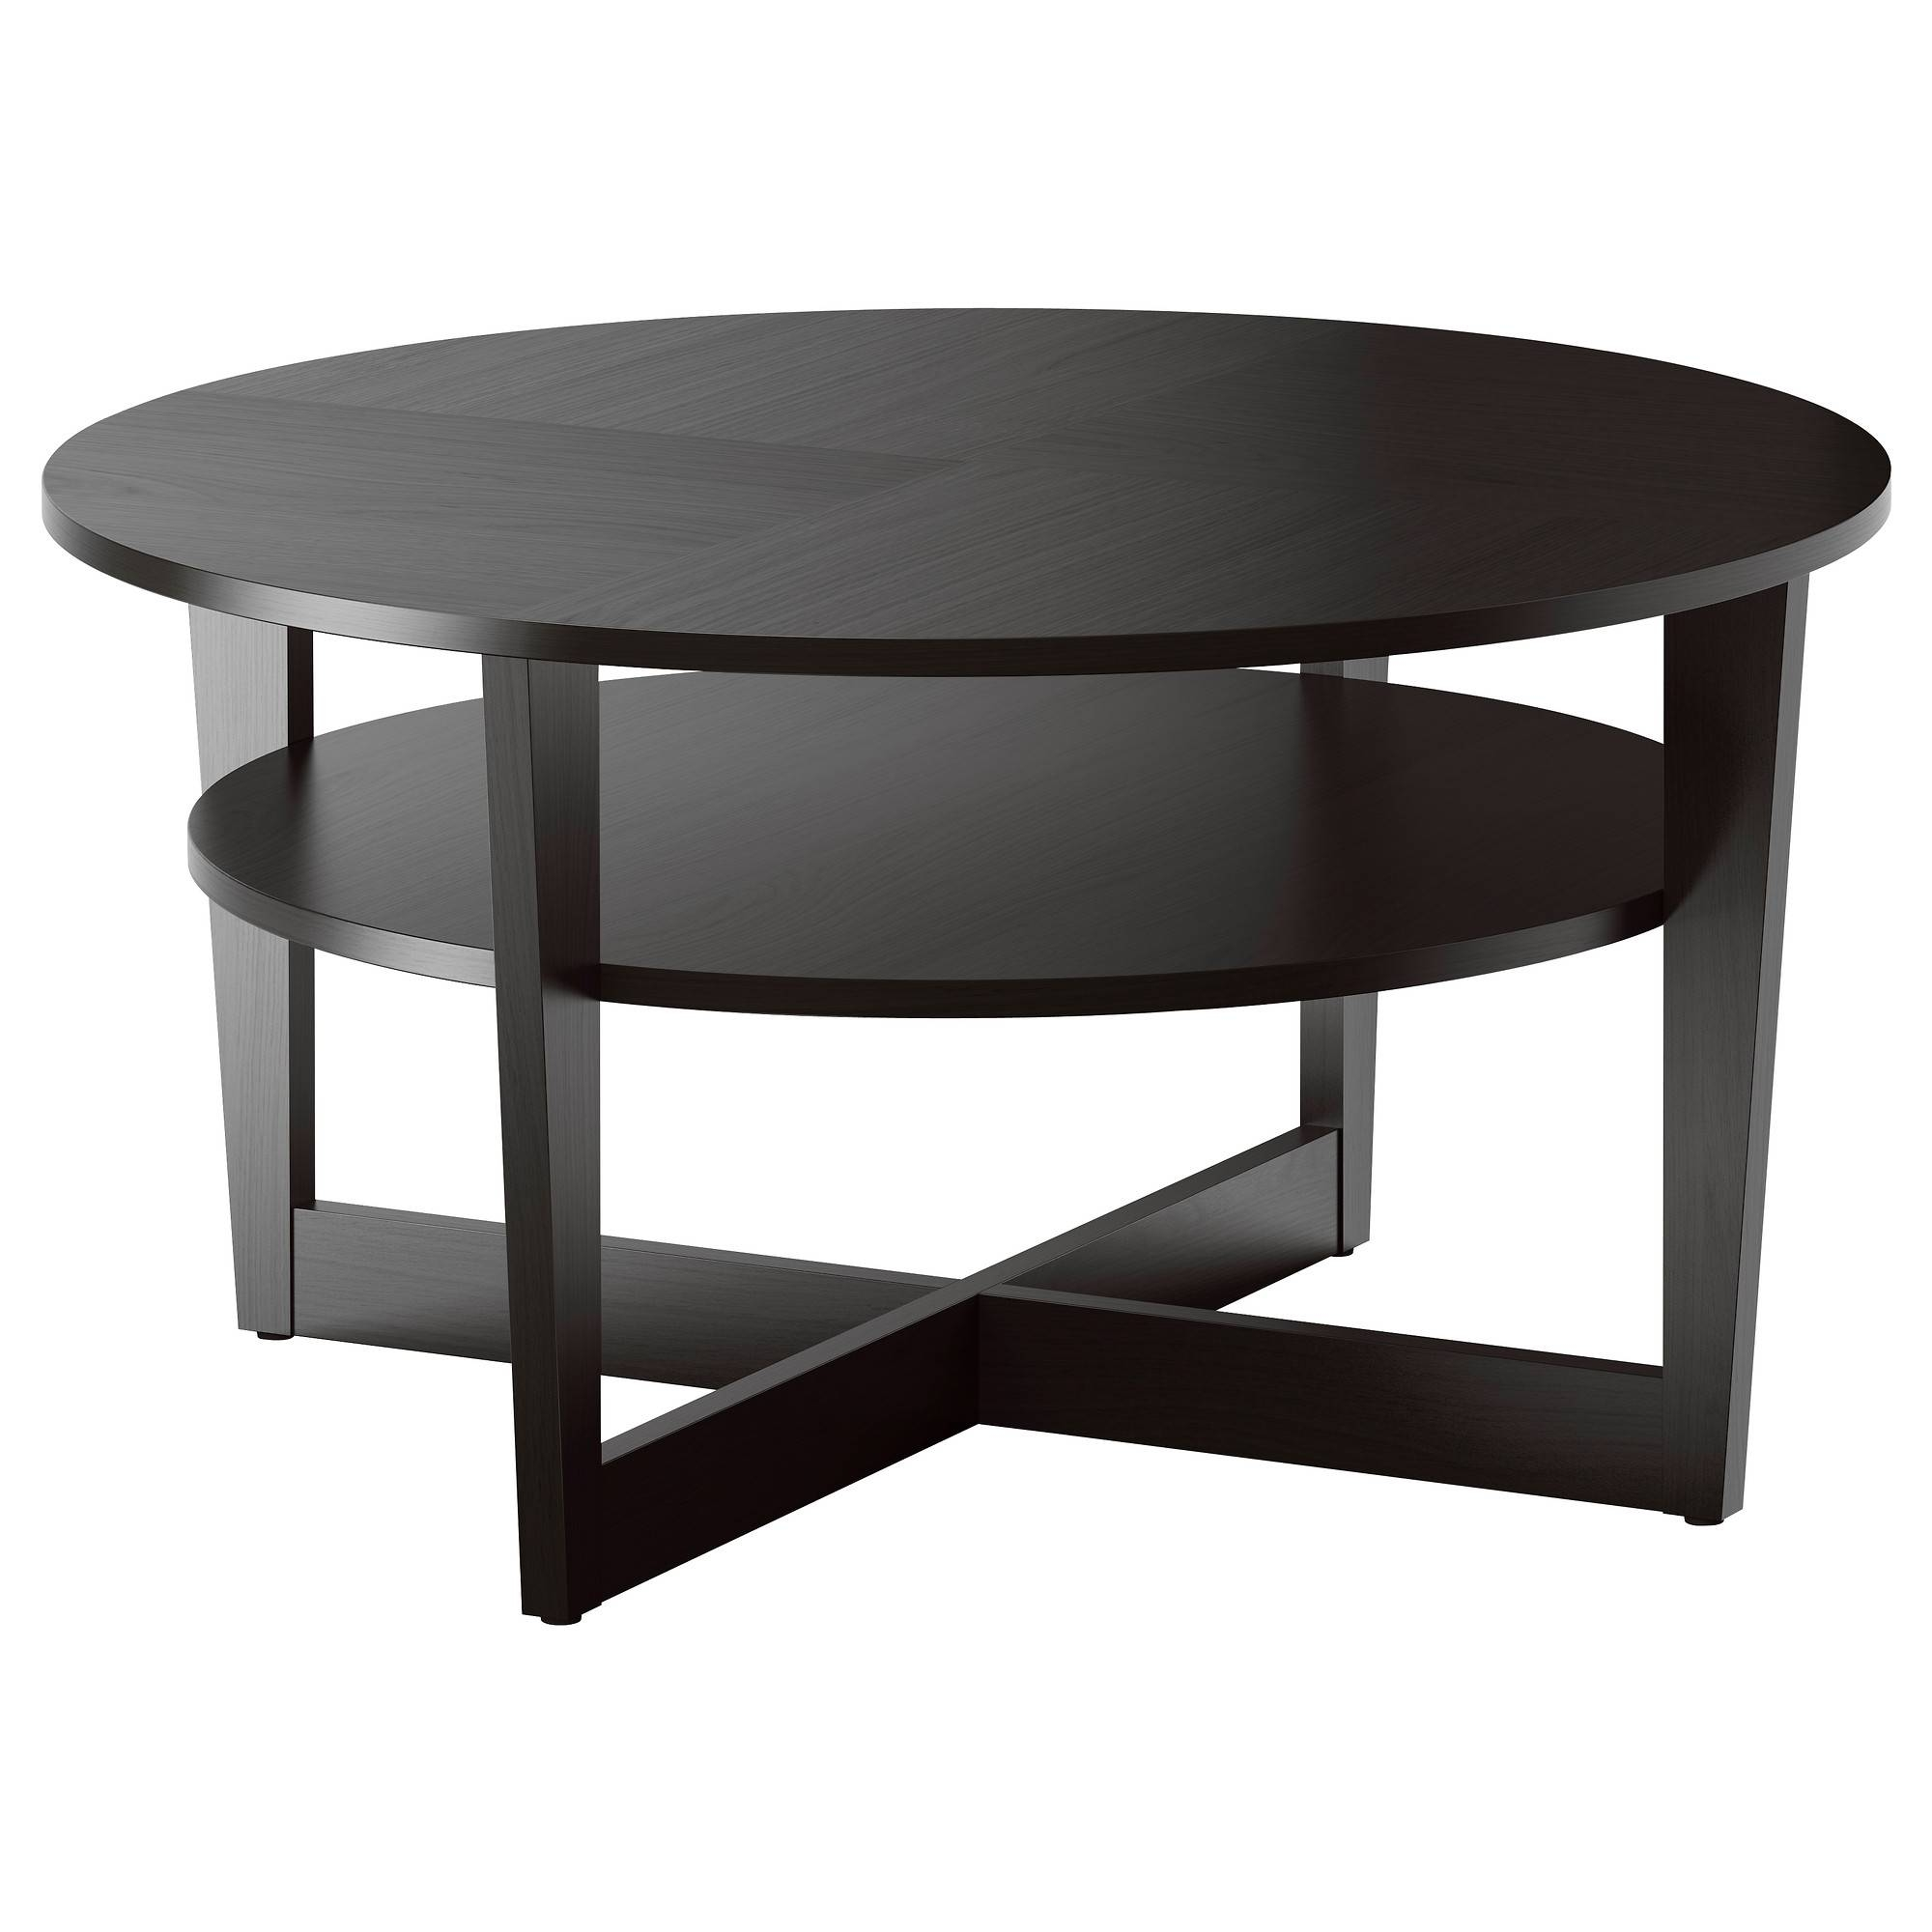 Photos of Black Circle Coffee Tables Showing 2 of 30 Photos